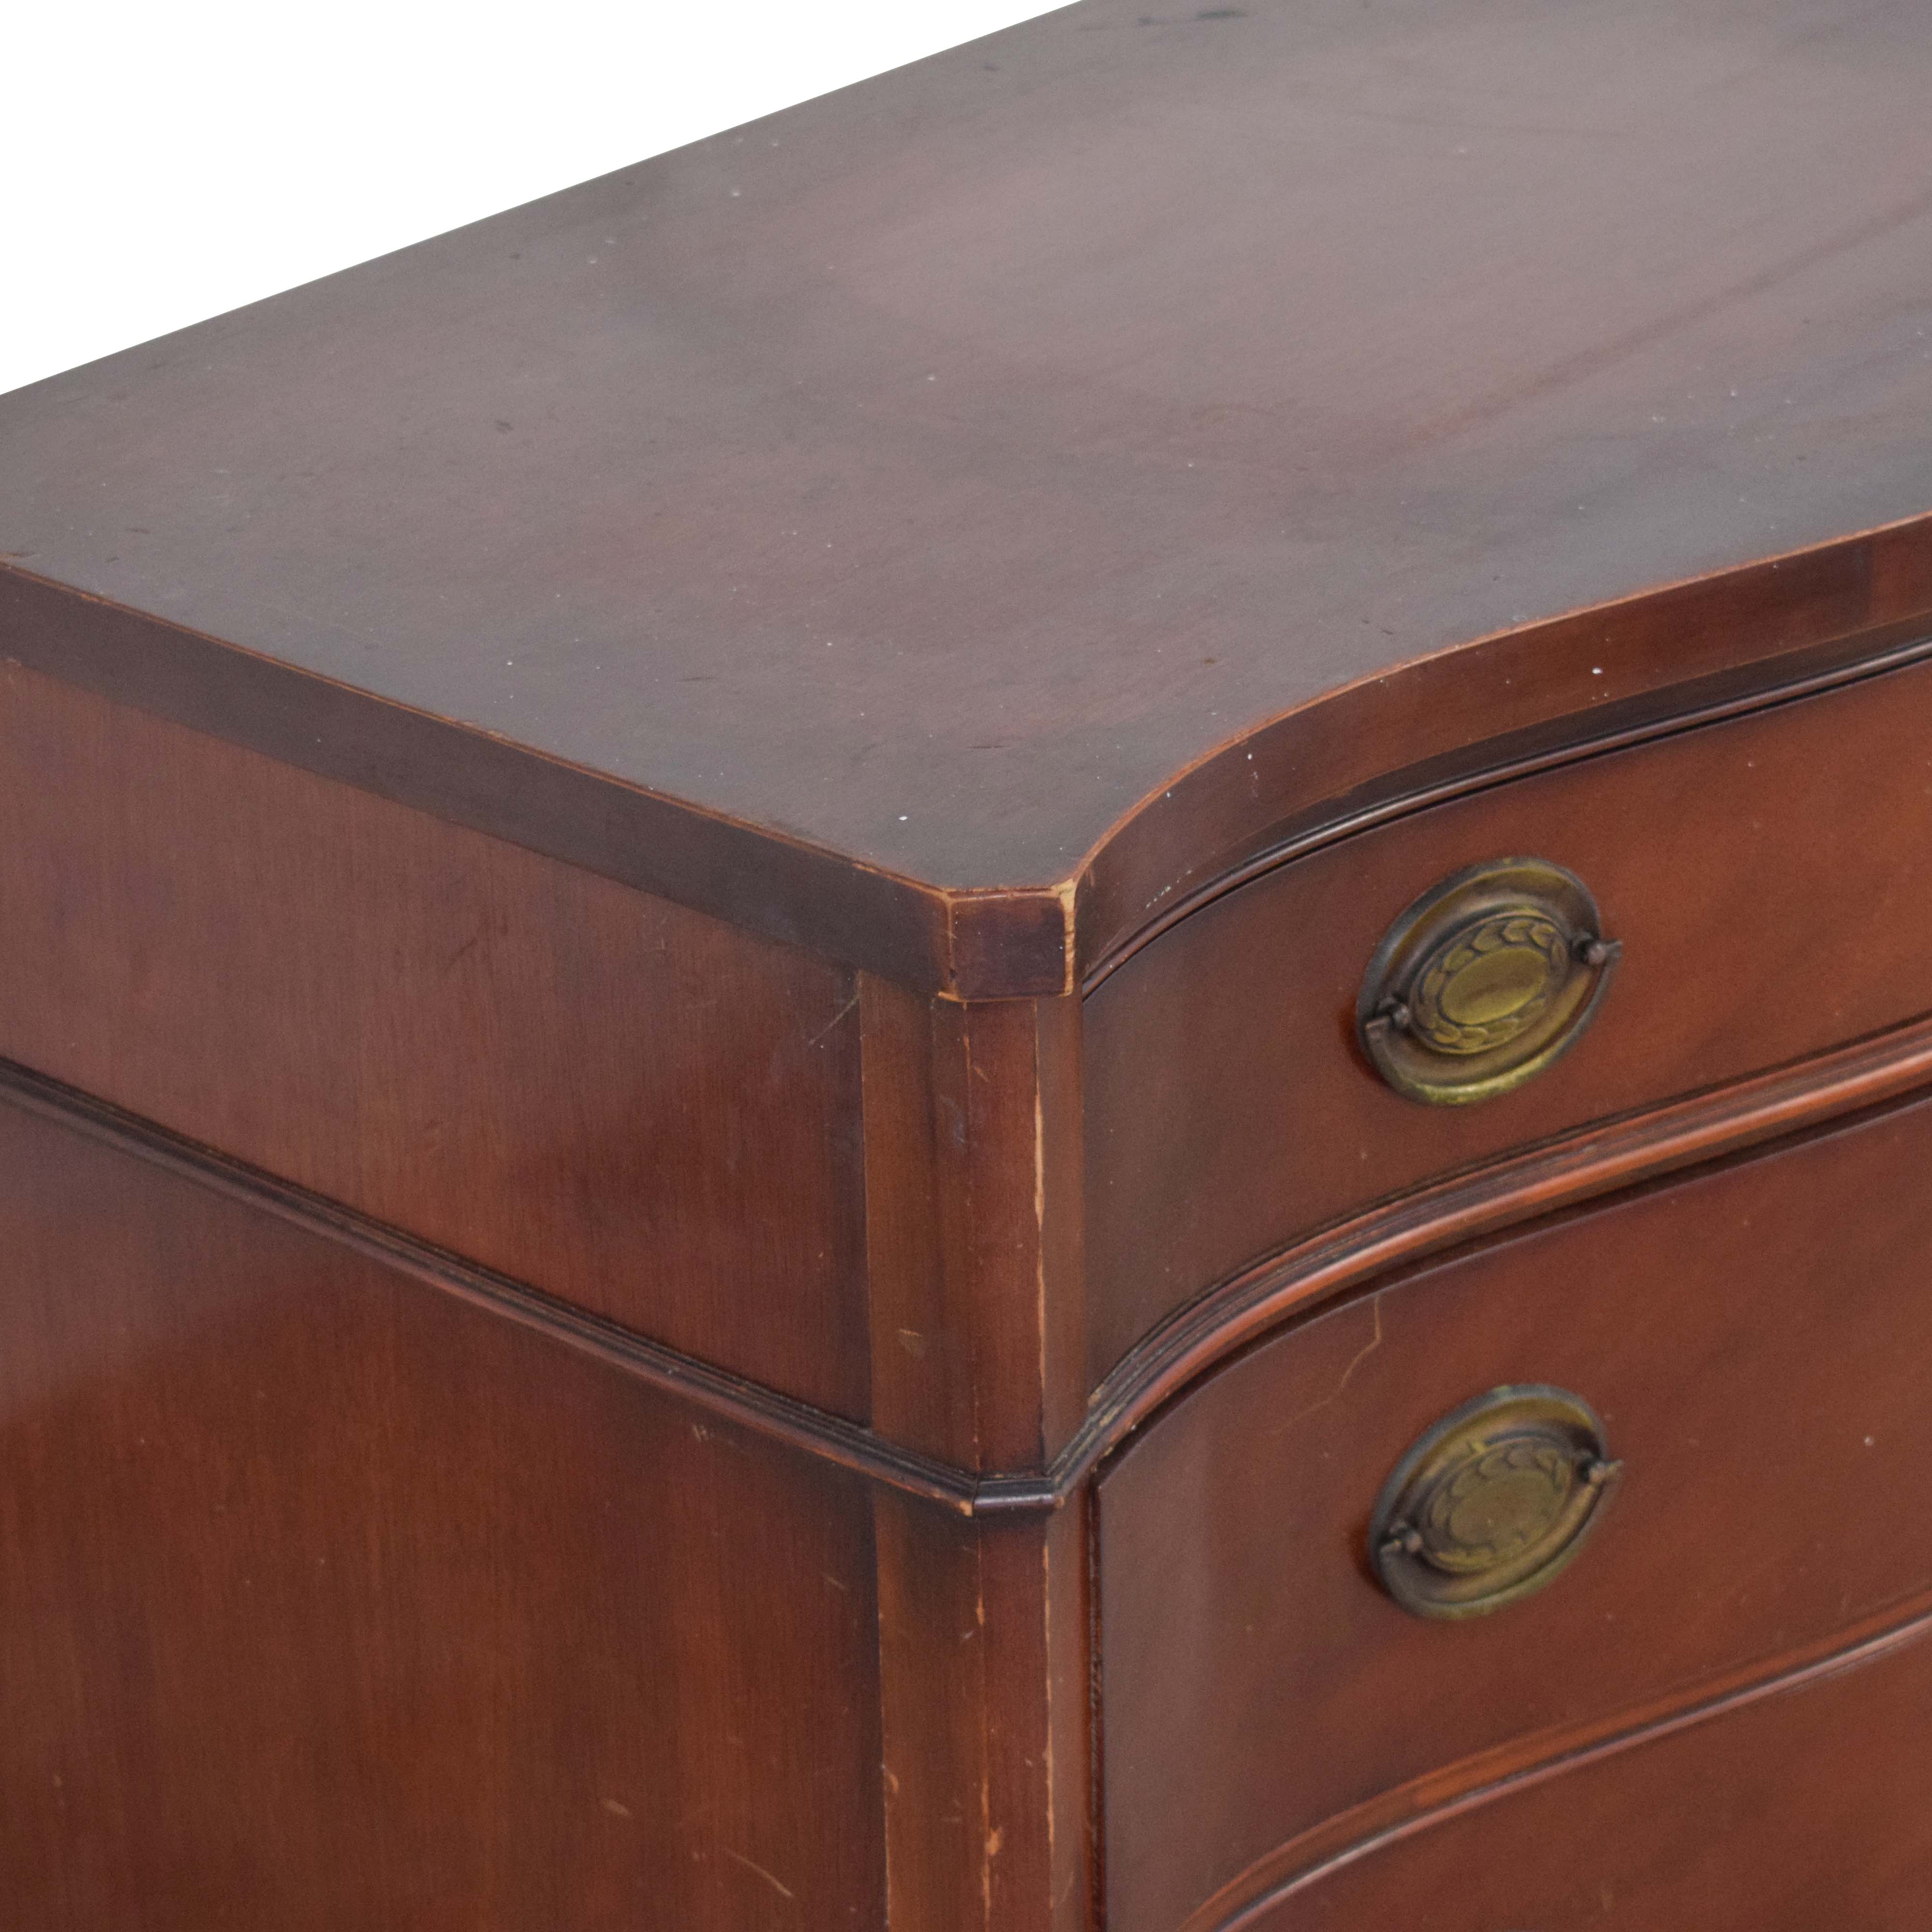 Drexel Drexel Four Drawer Chest of Drawers Dressers